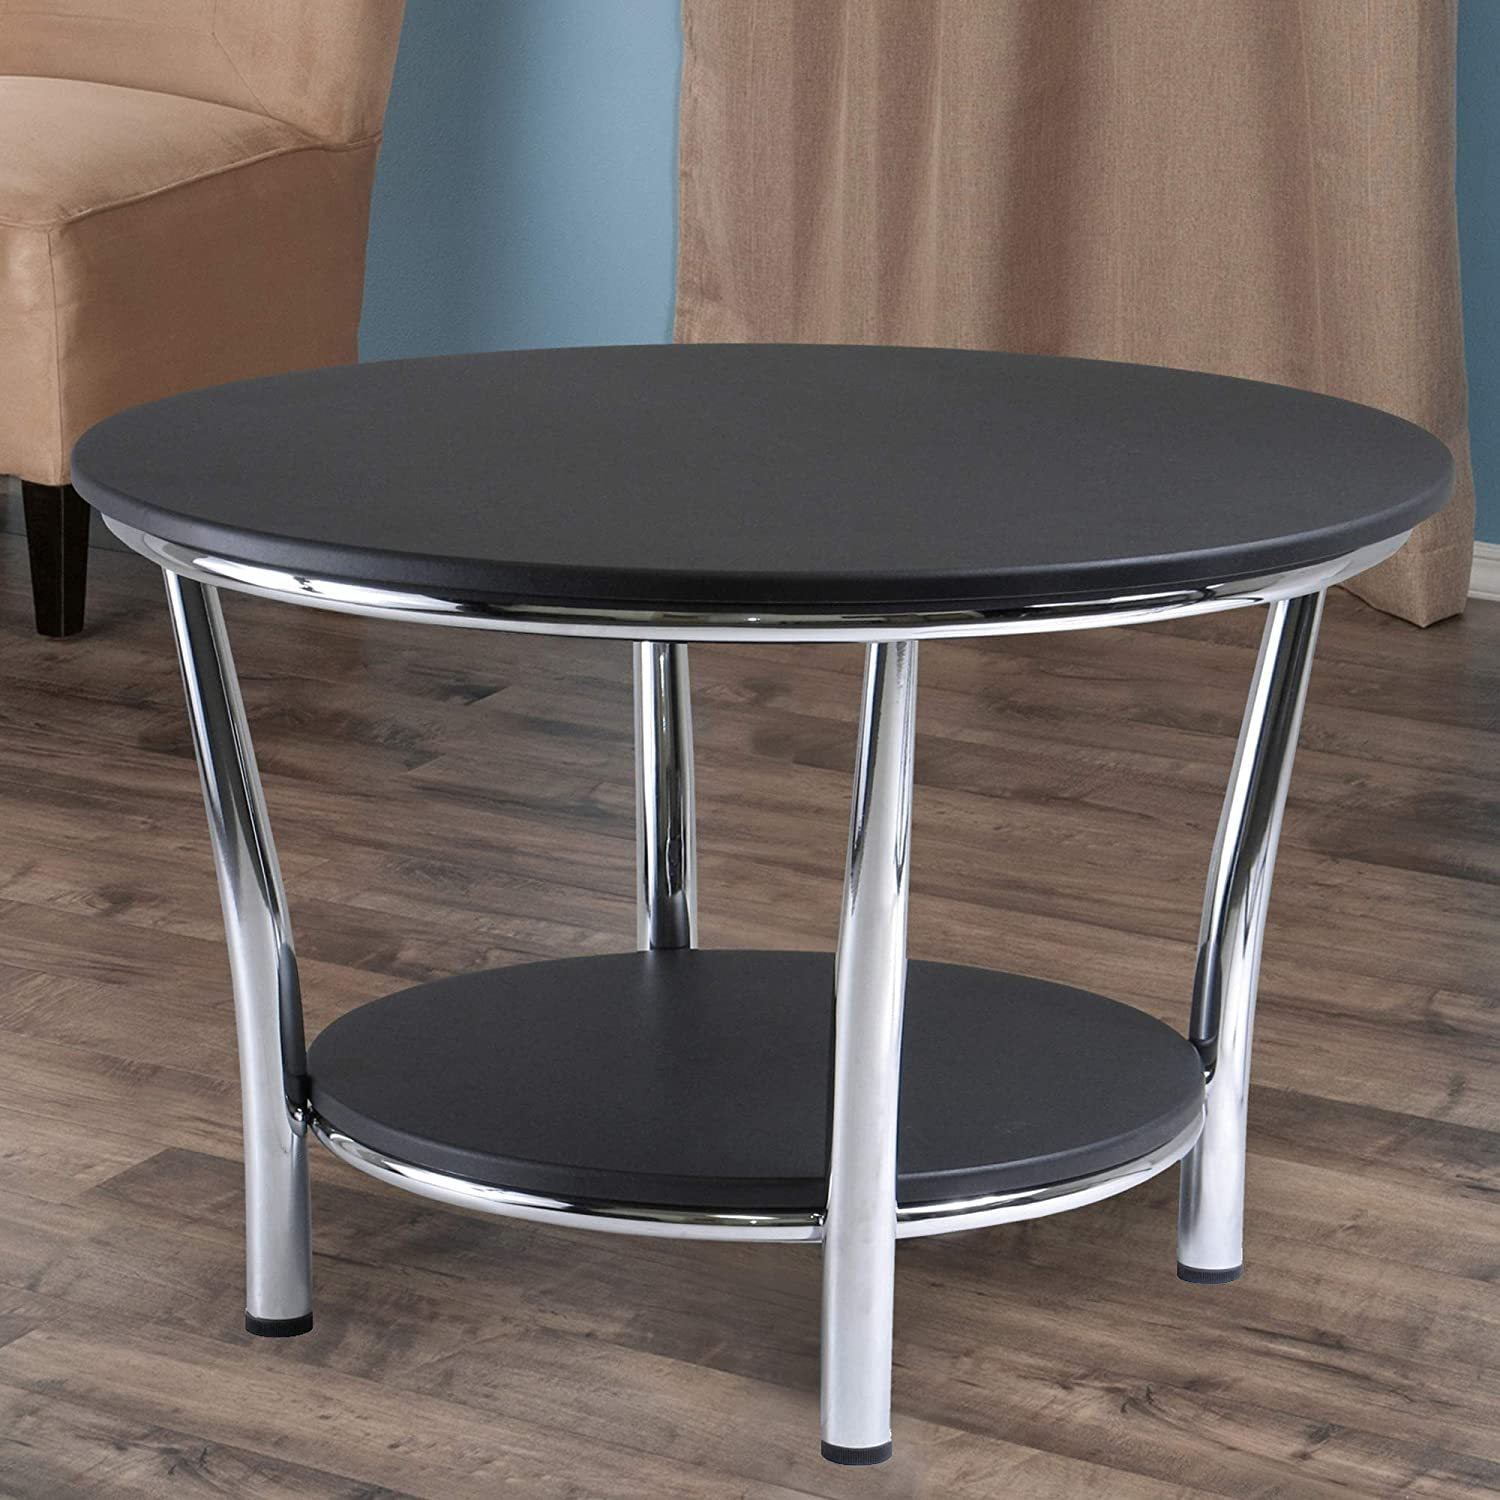 Maya Round Coffee Table, Black Top, Metal Legs - Pot Racks Plus